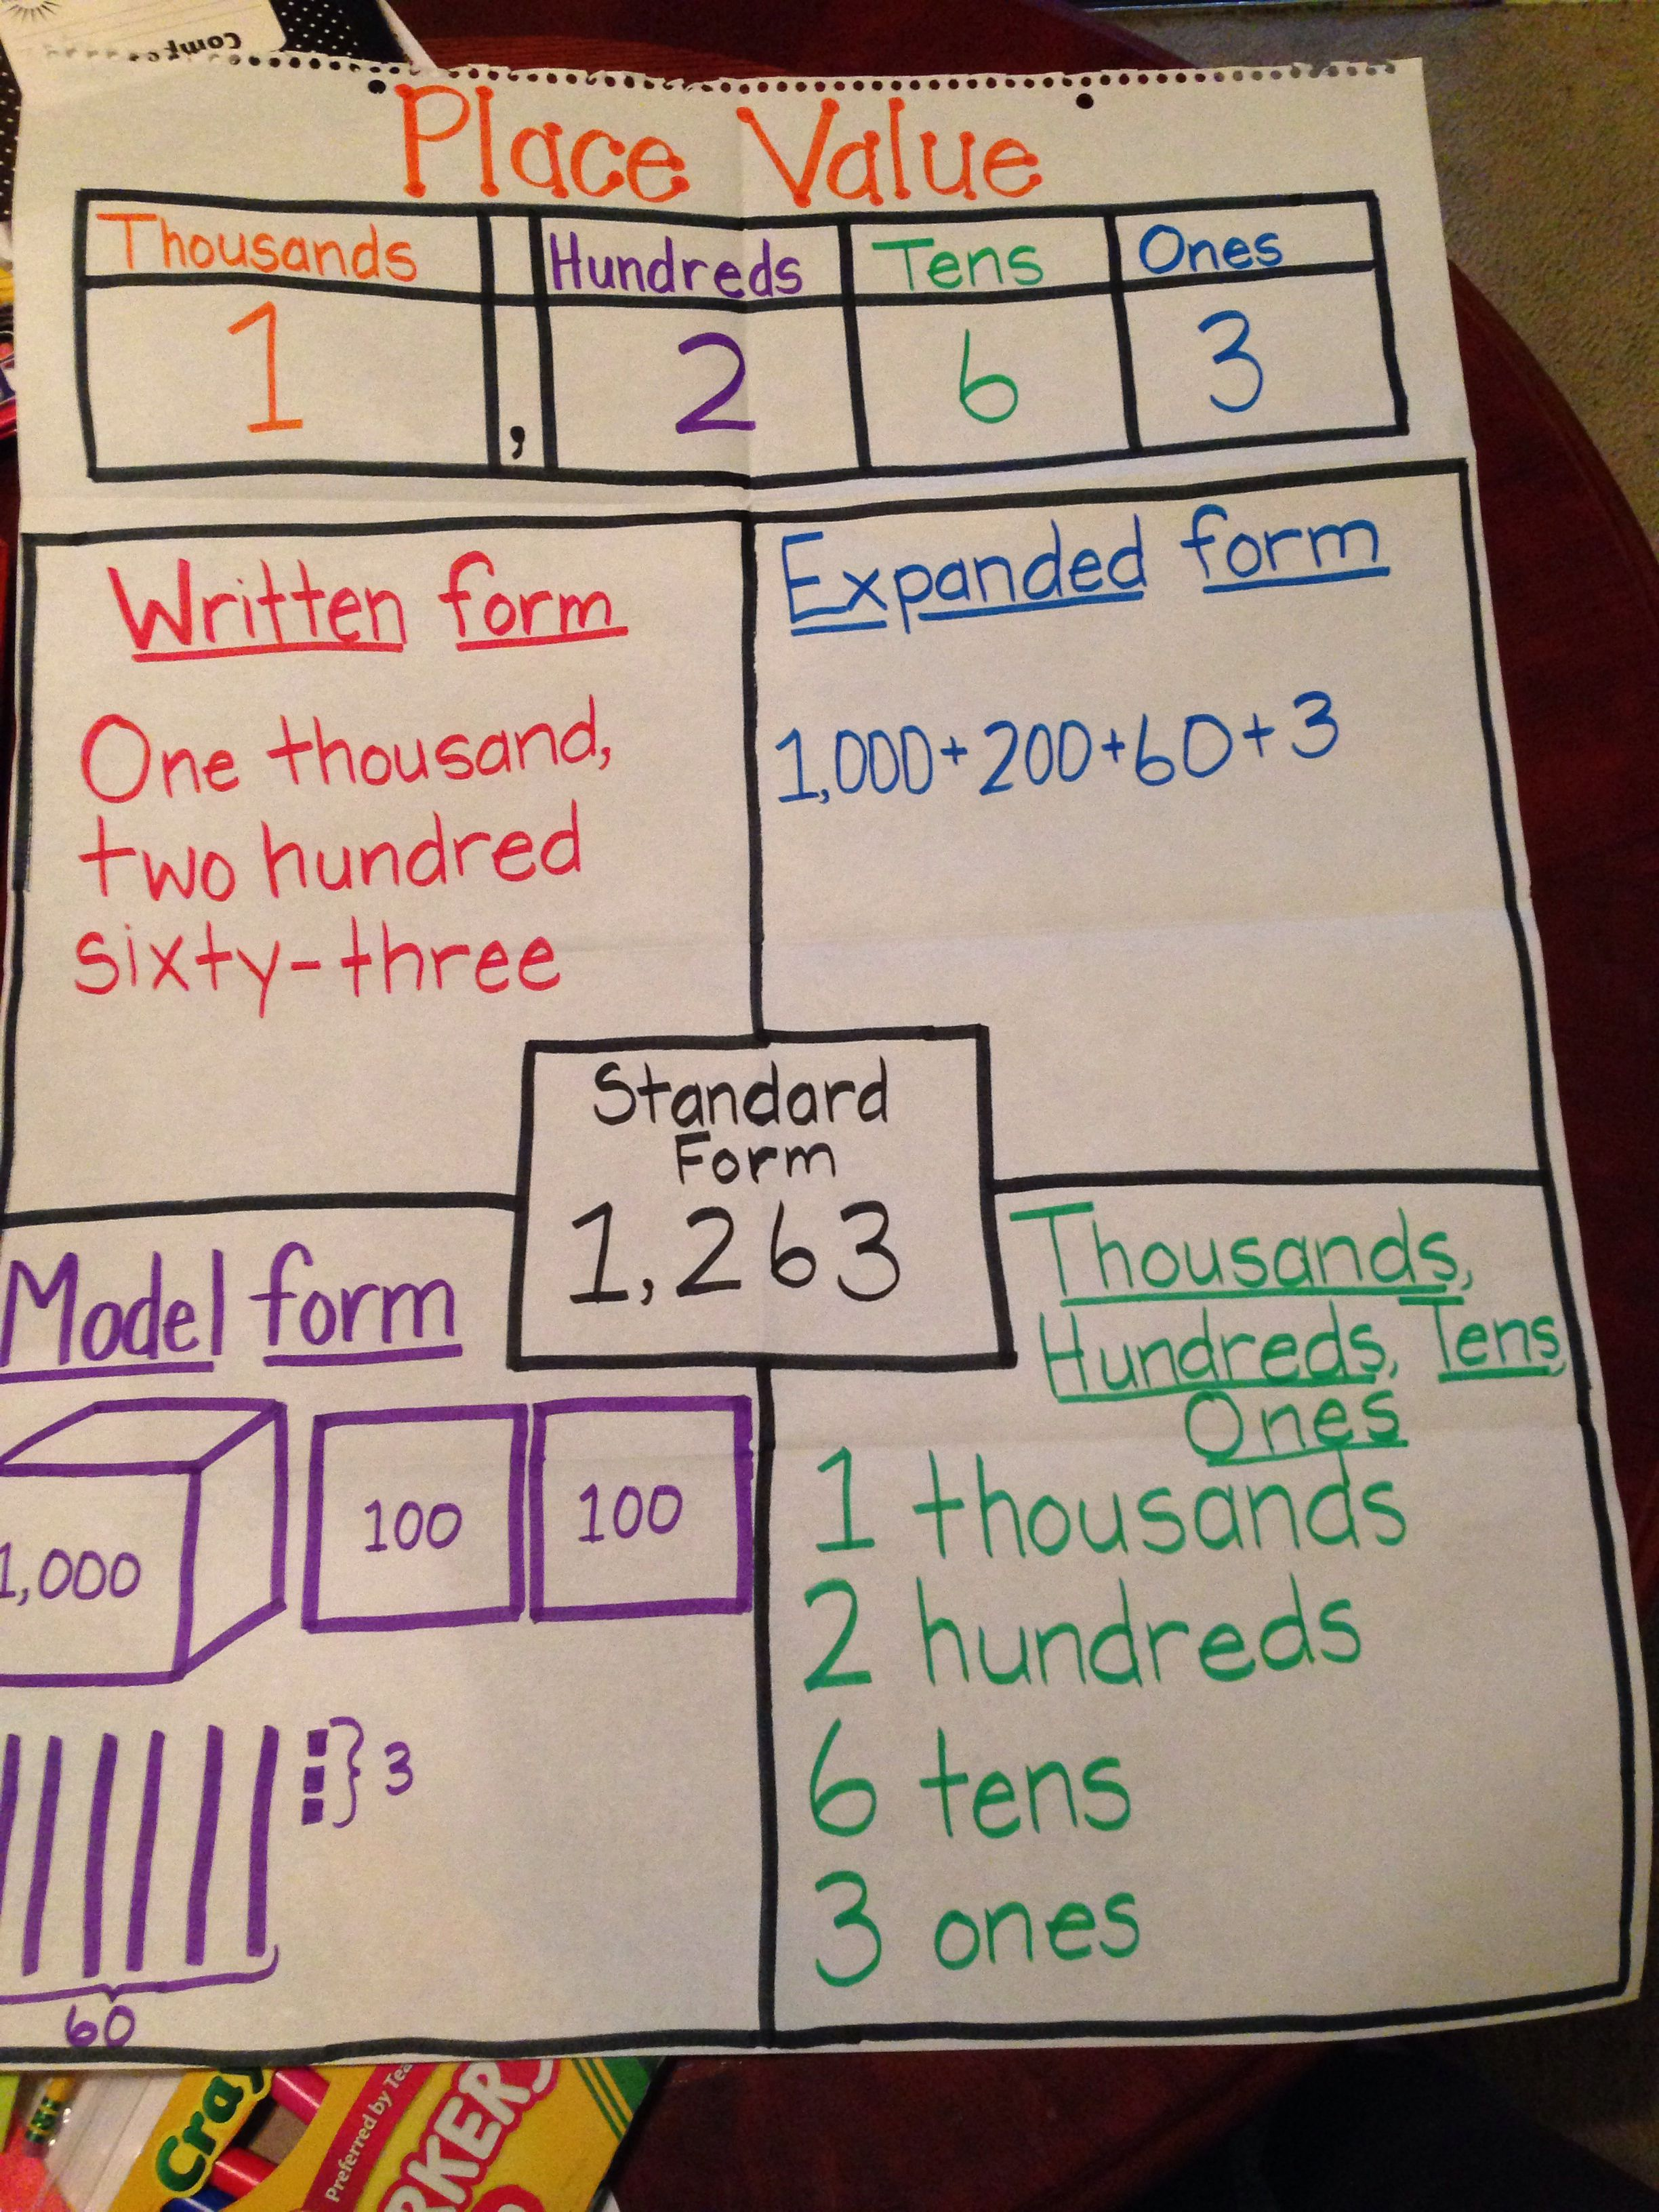 Place Value Chart I Need To Add Decimals To This For My Fourth